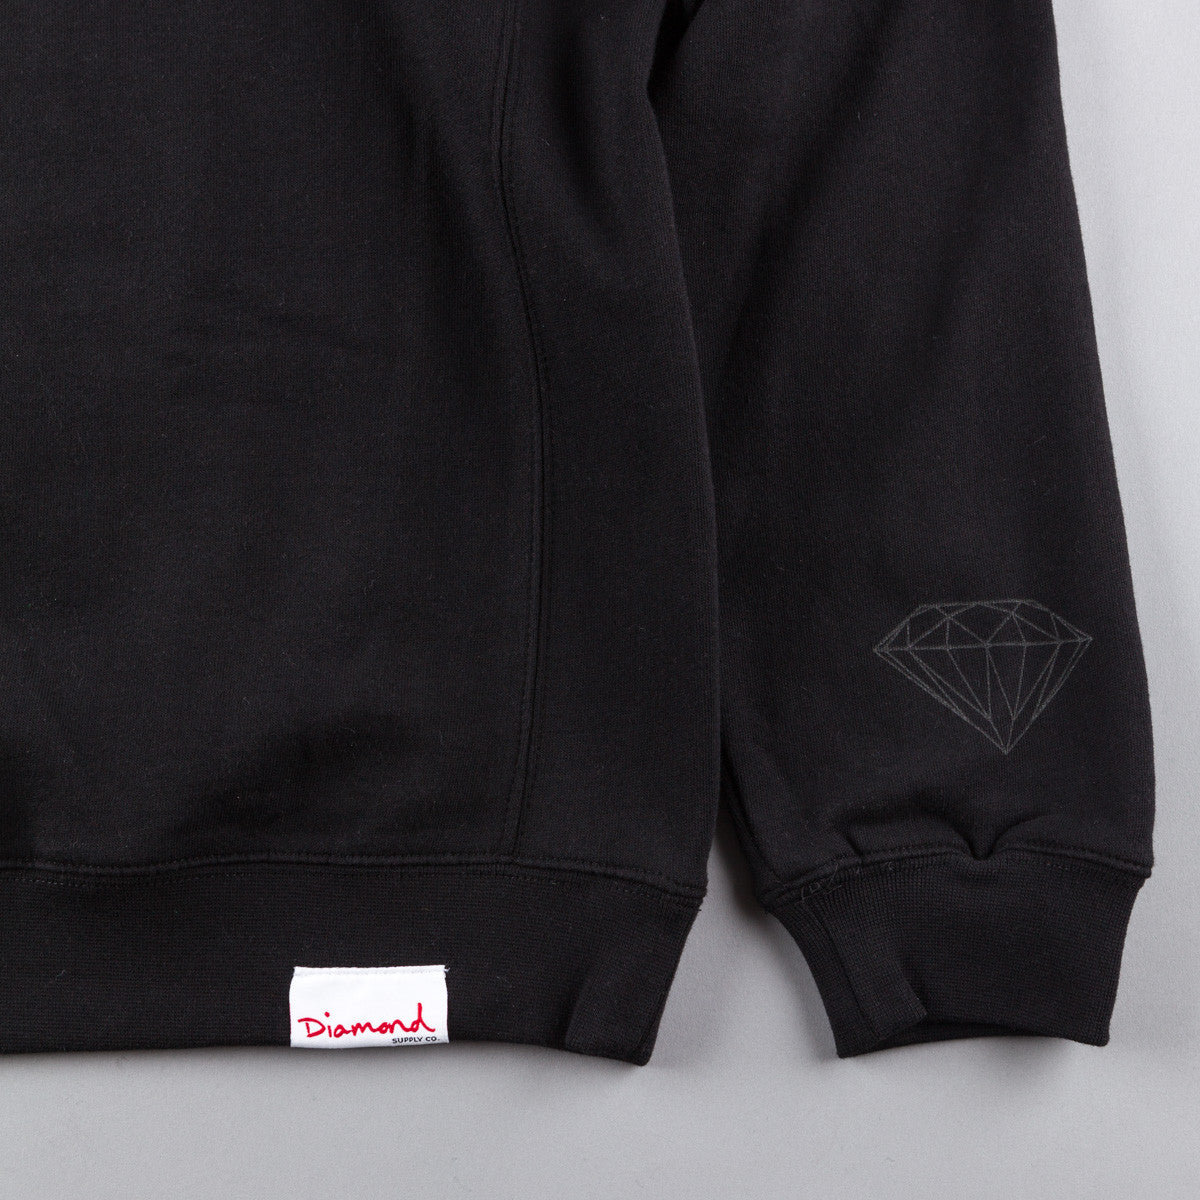 Diamond Tonal Un-Polo Crewneck Sweatshirt - Black